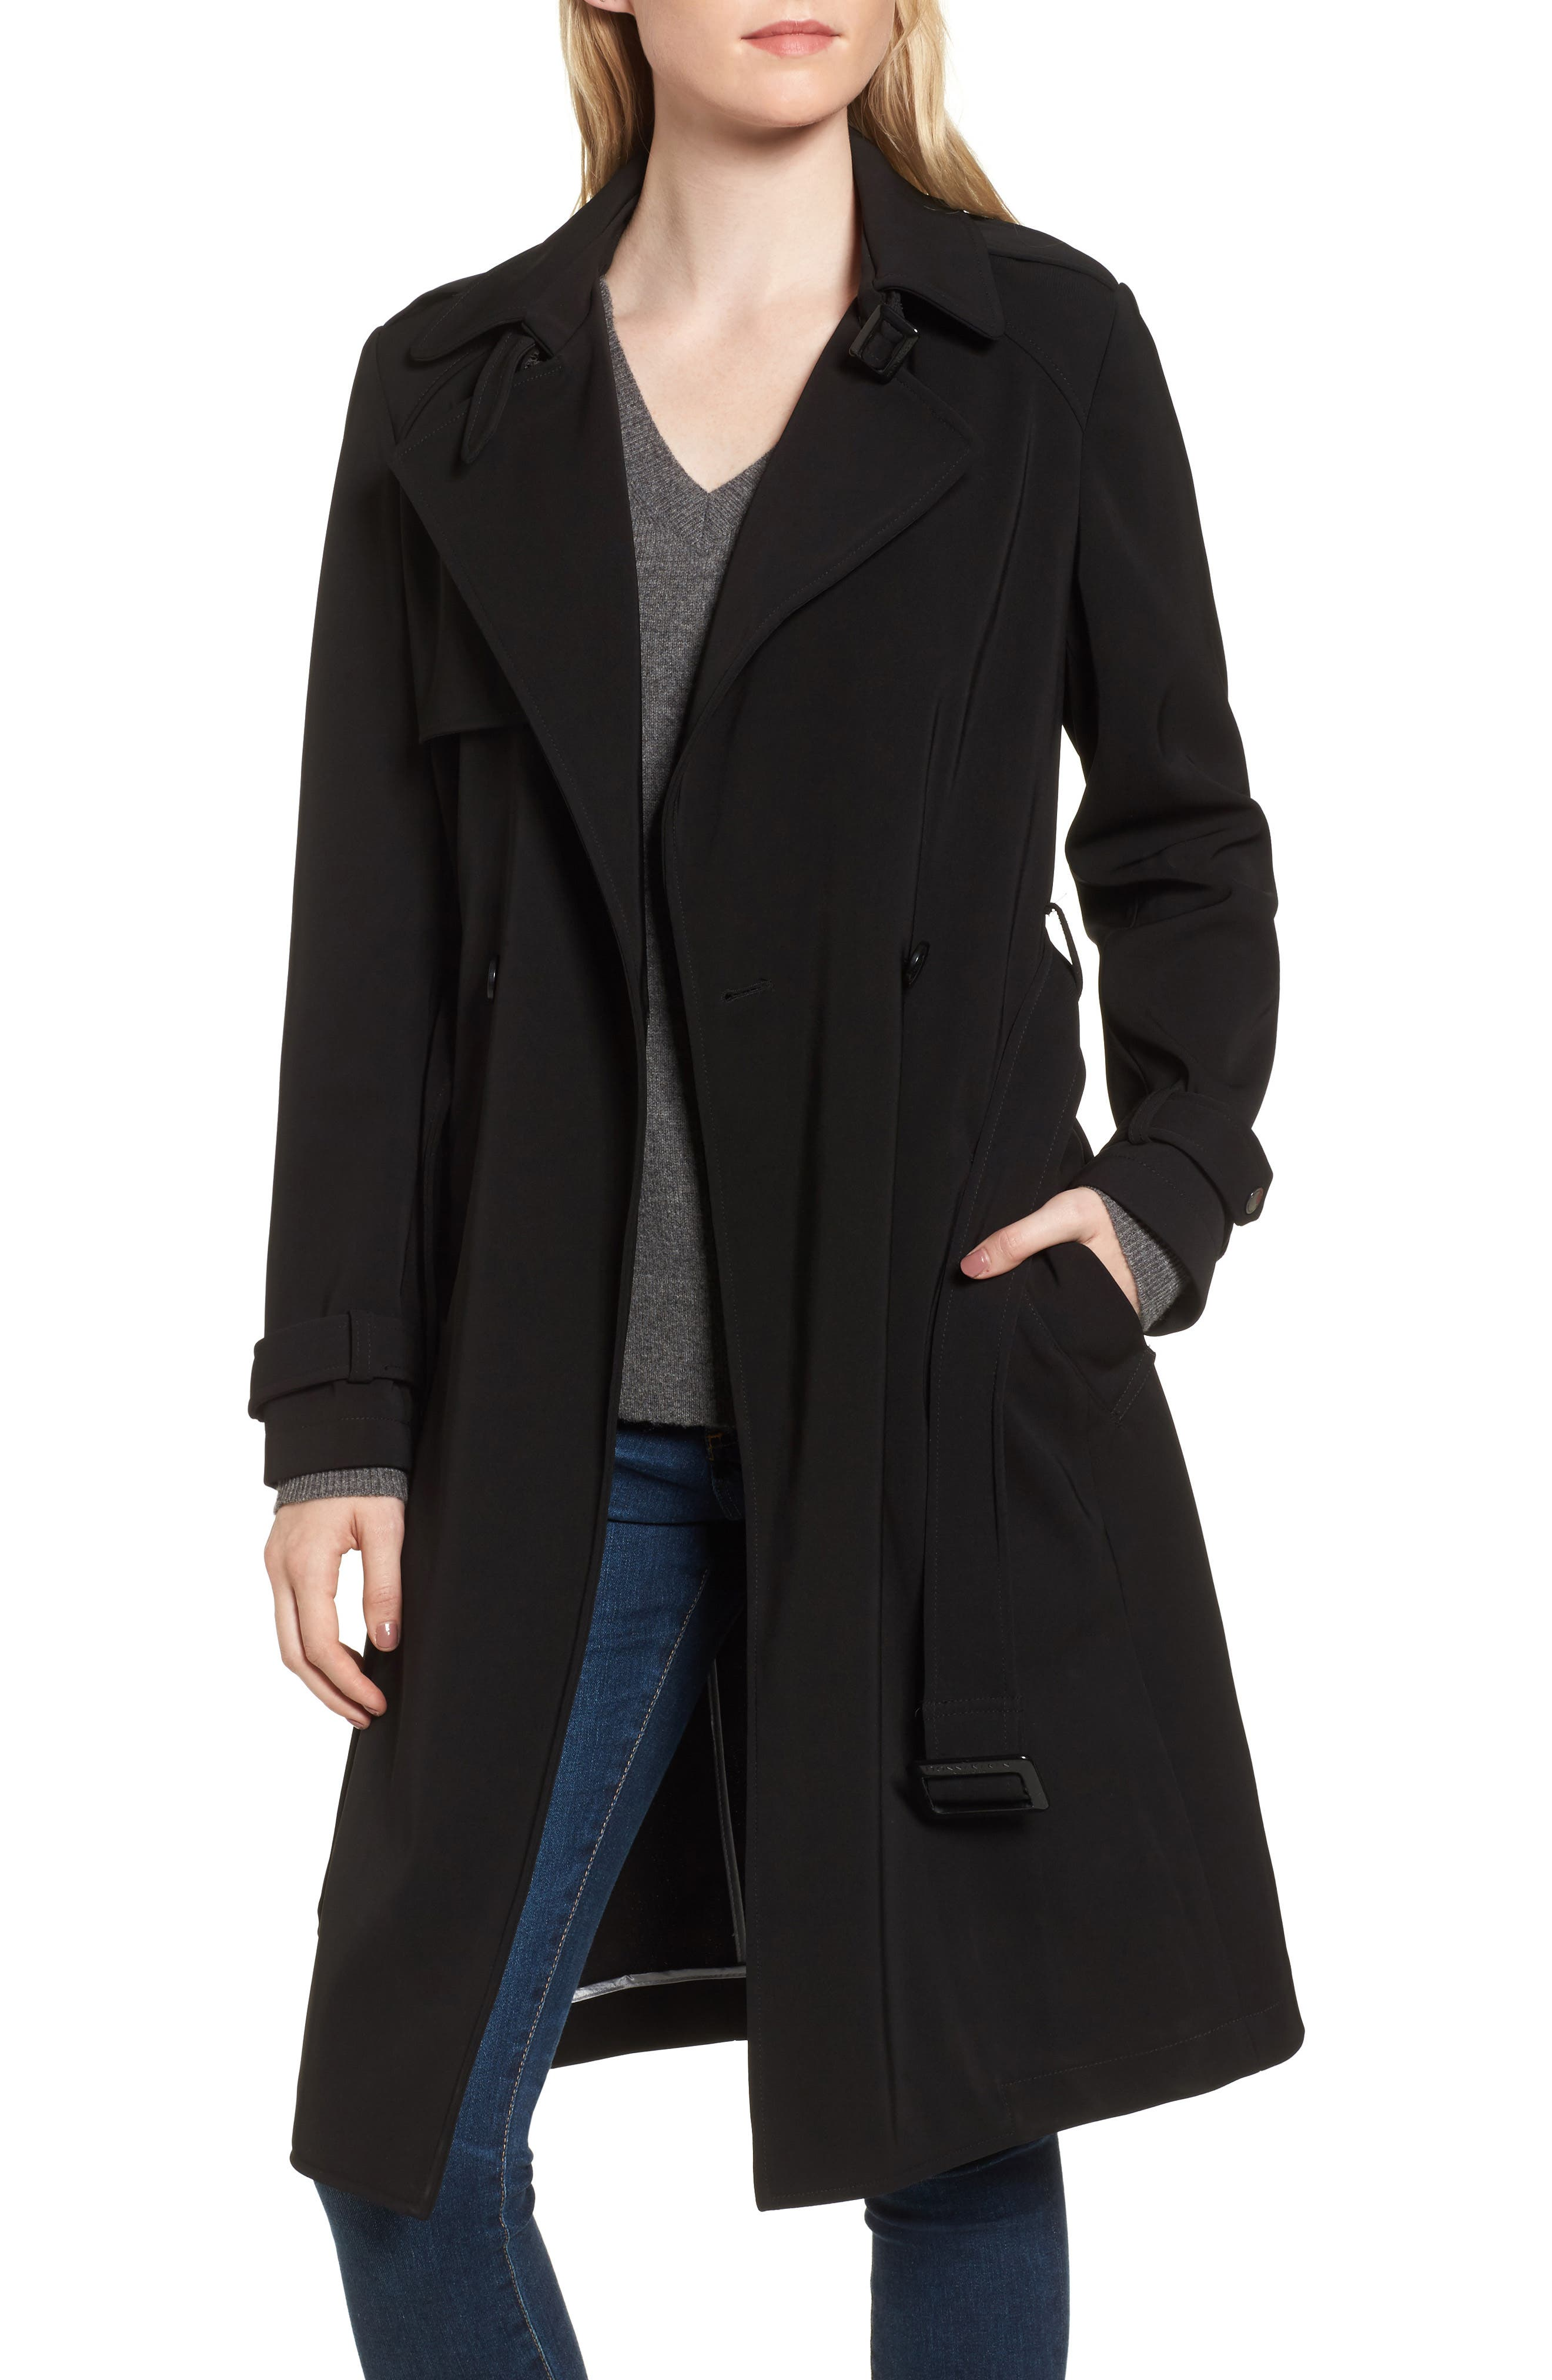 DKNY French Twill Water Resistant Trench Coat,                             Alternate thumbnail 4, color,                             001